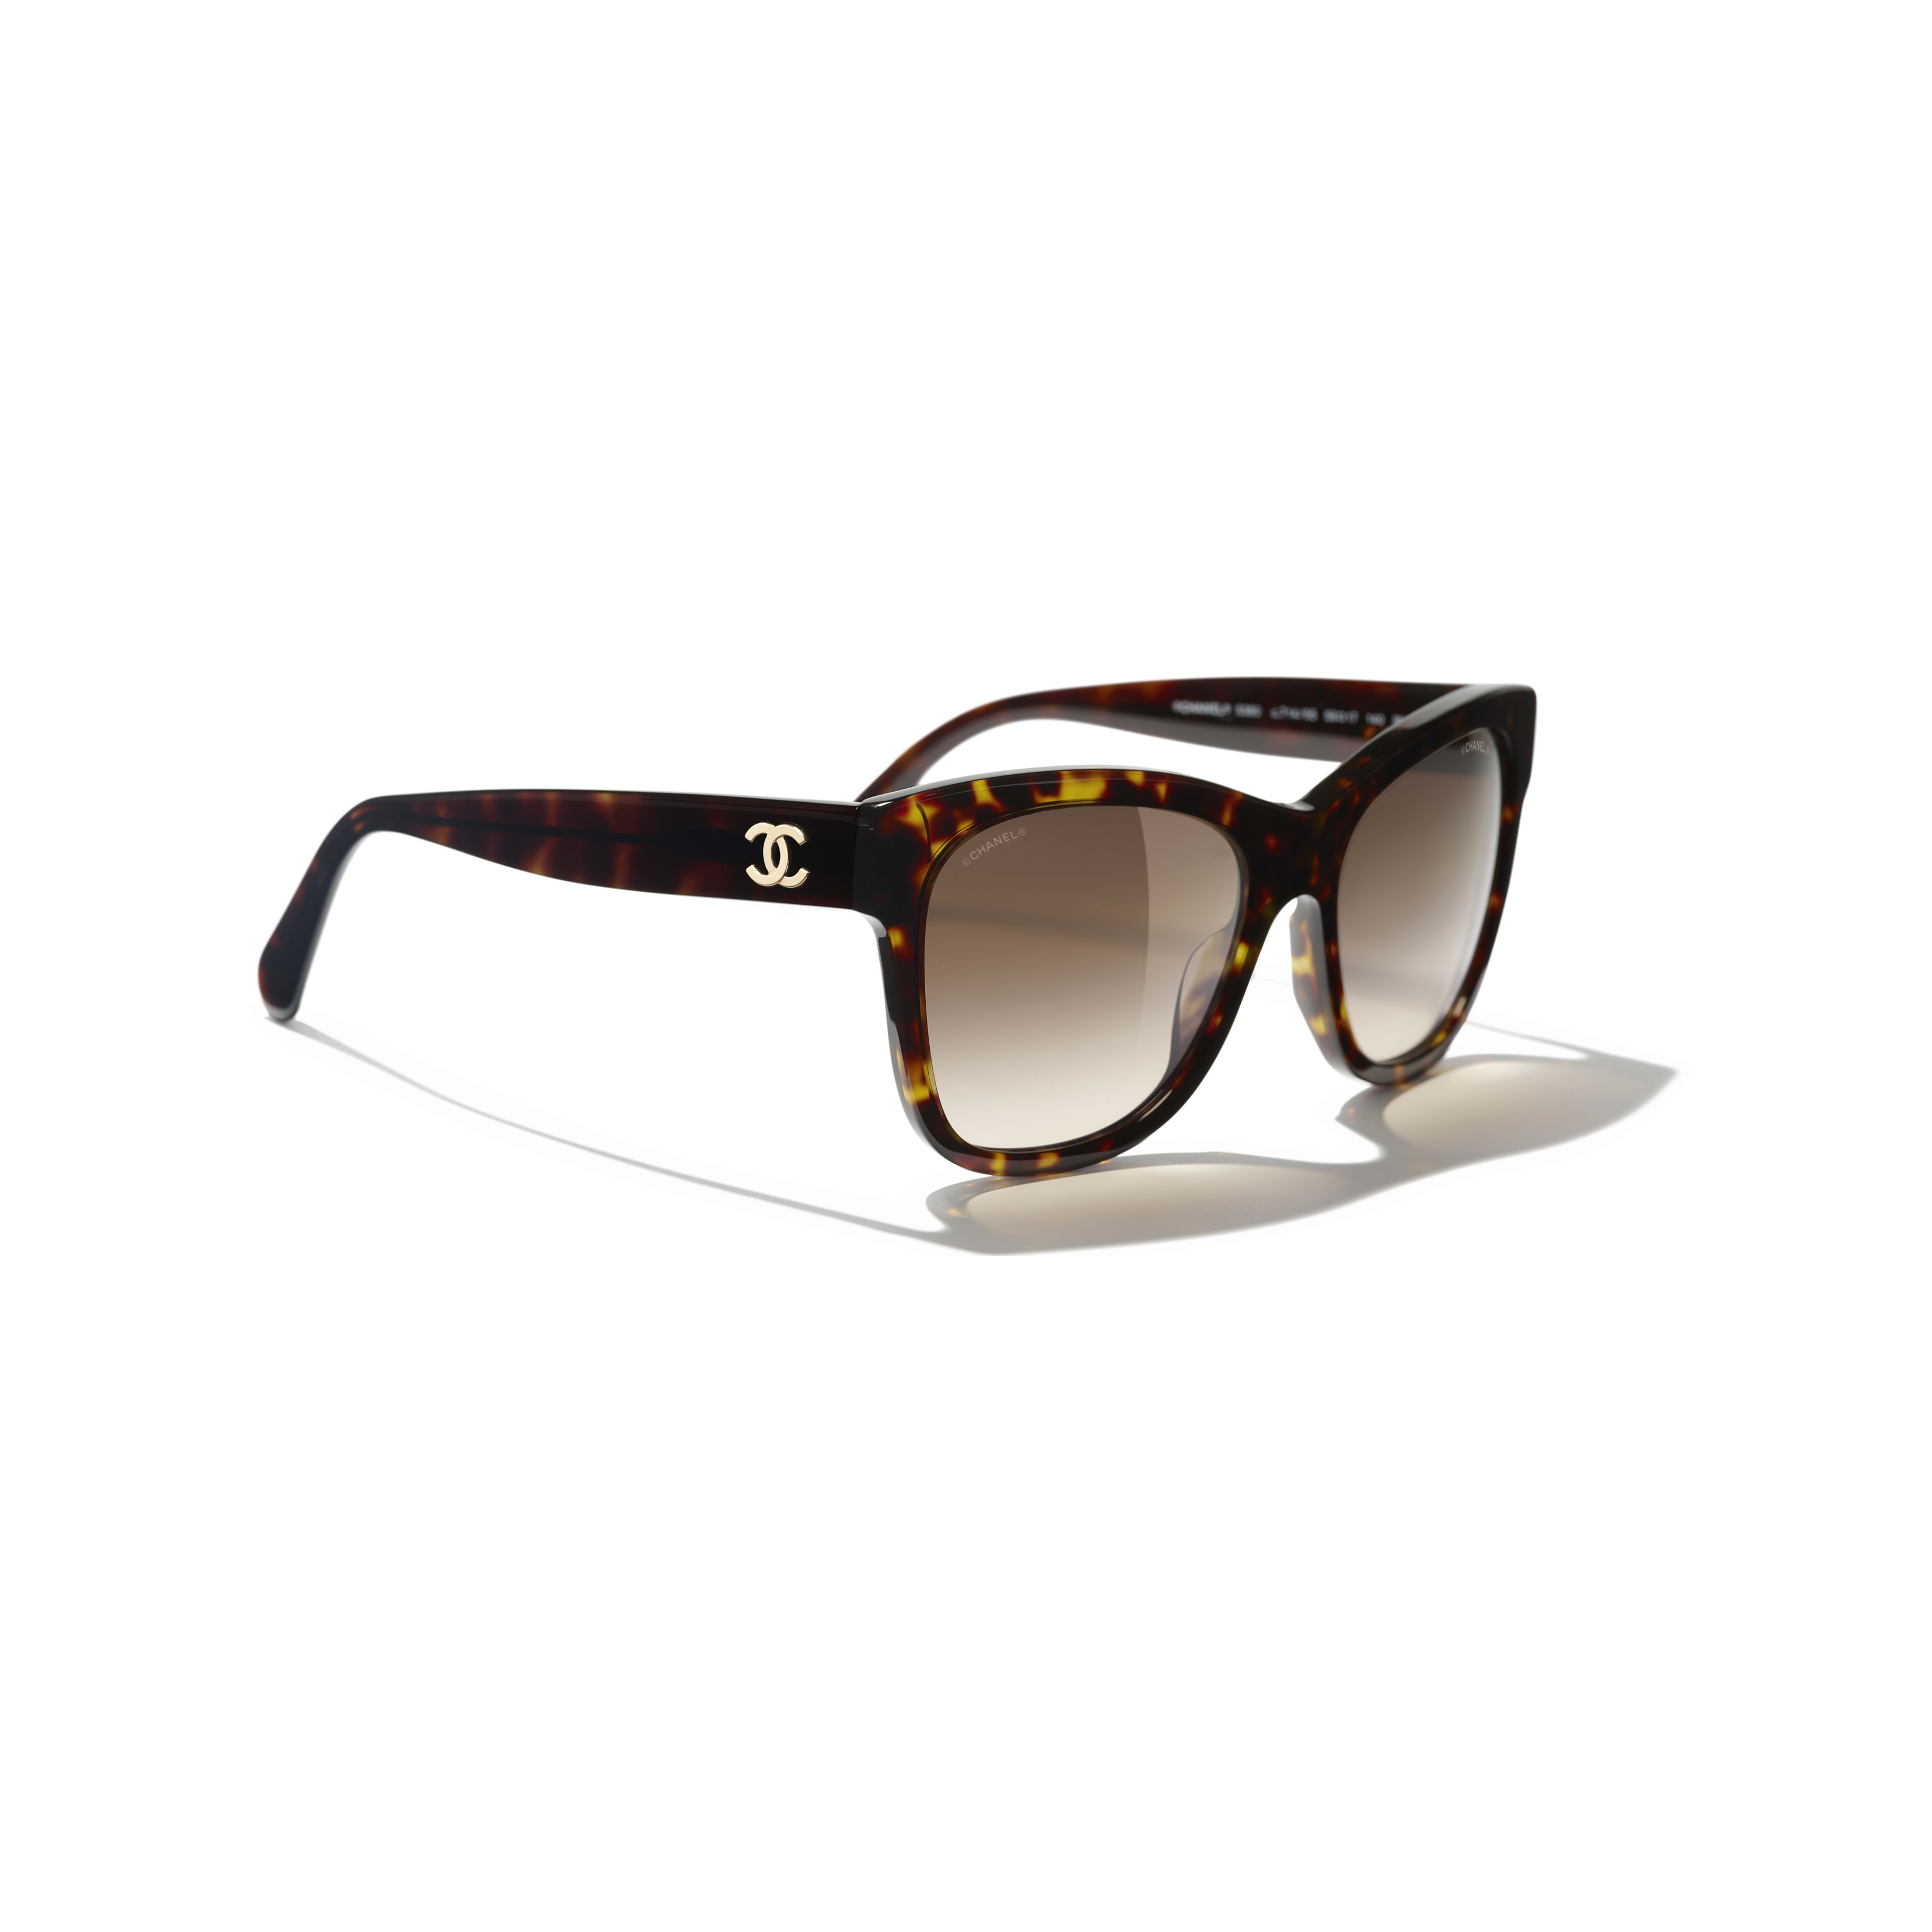 Square Sunglasses - Dark Tortoise - Acetate - CHANEL - Extra view - see standard sized version